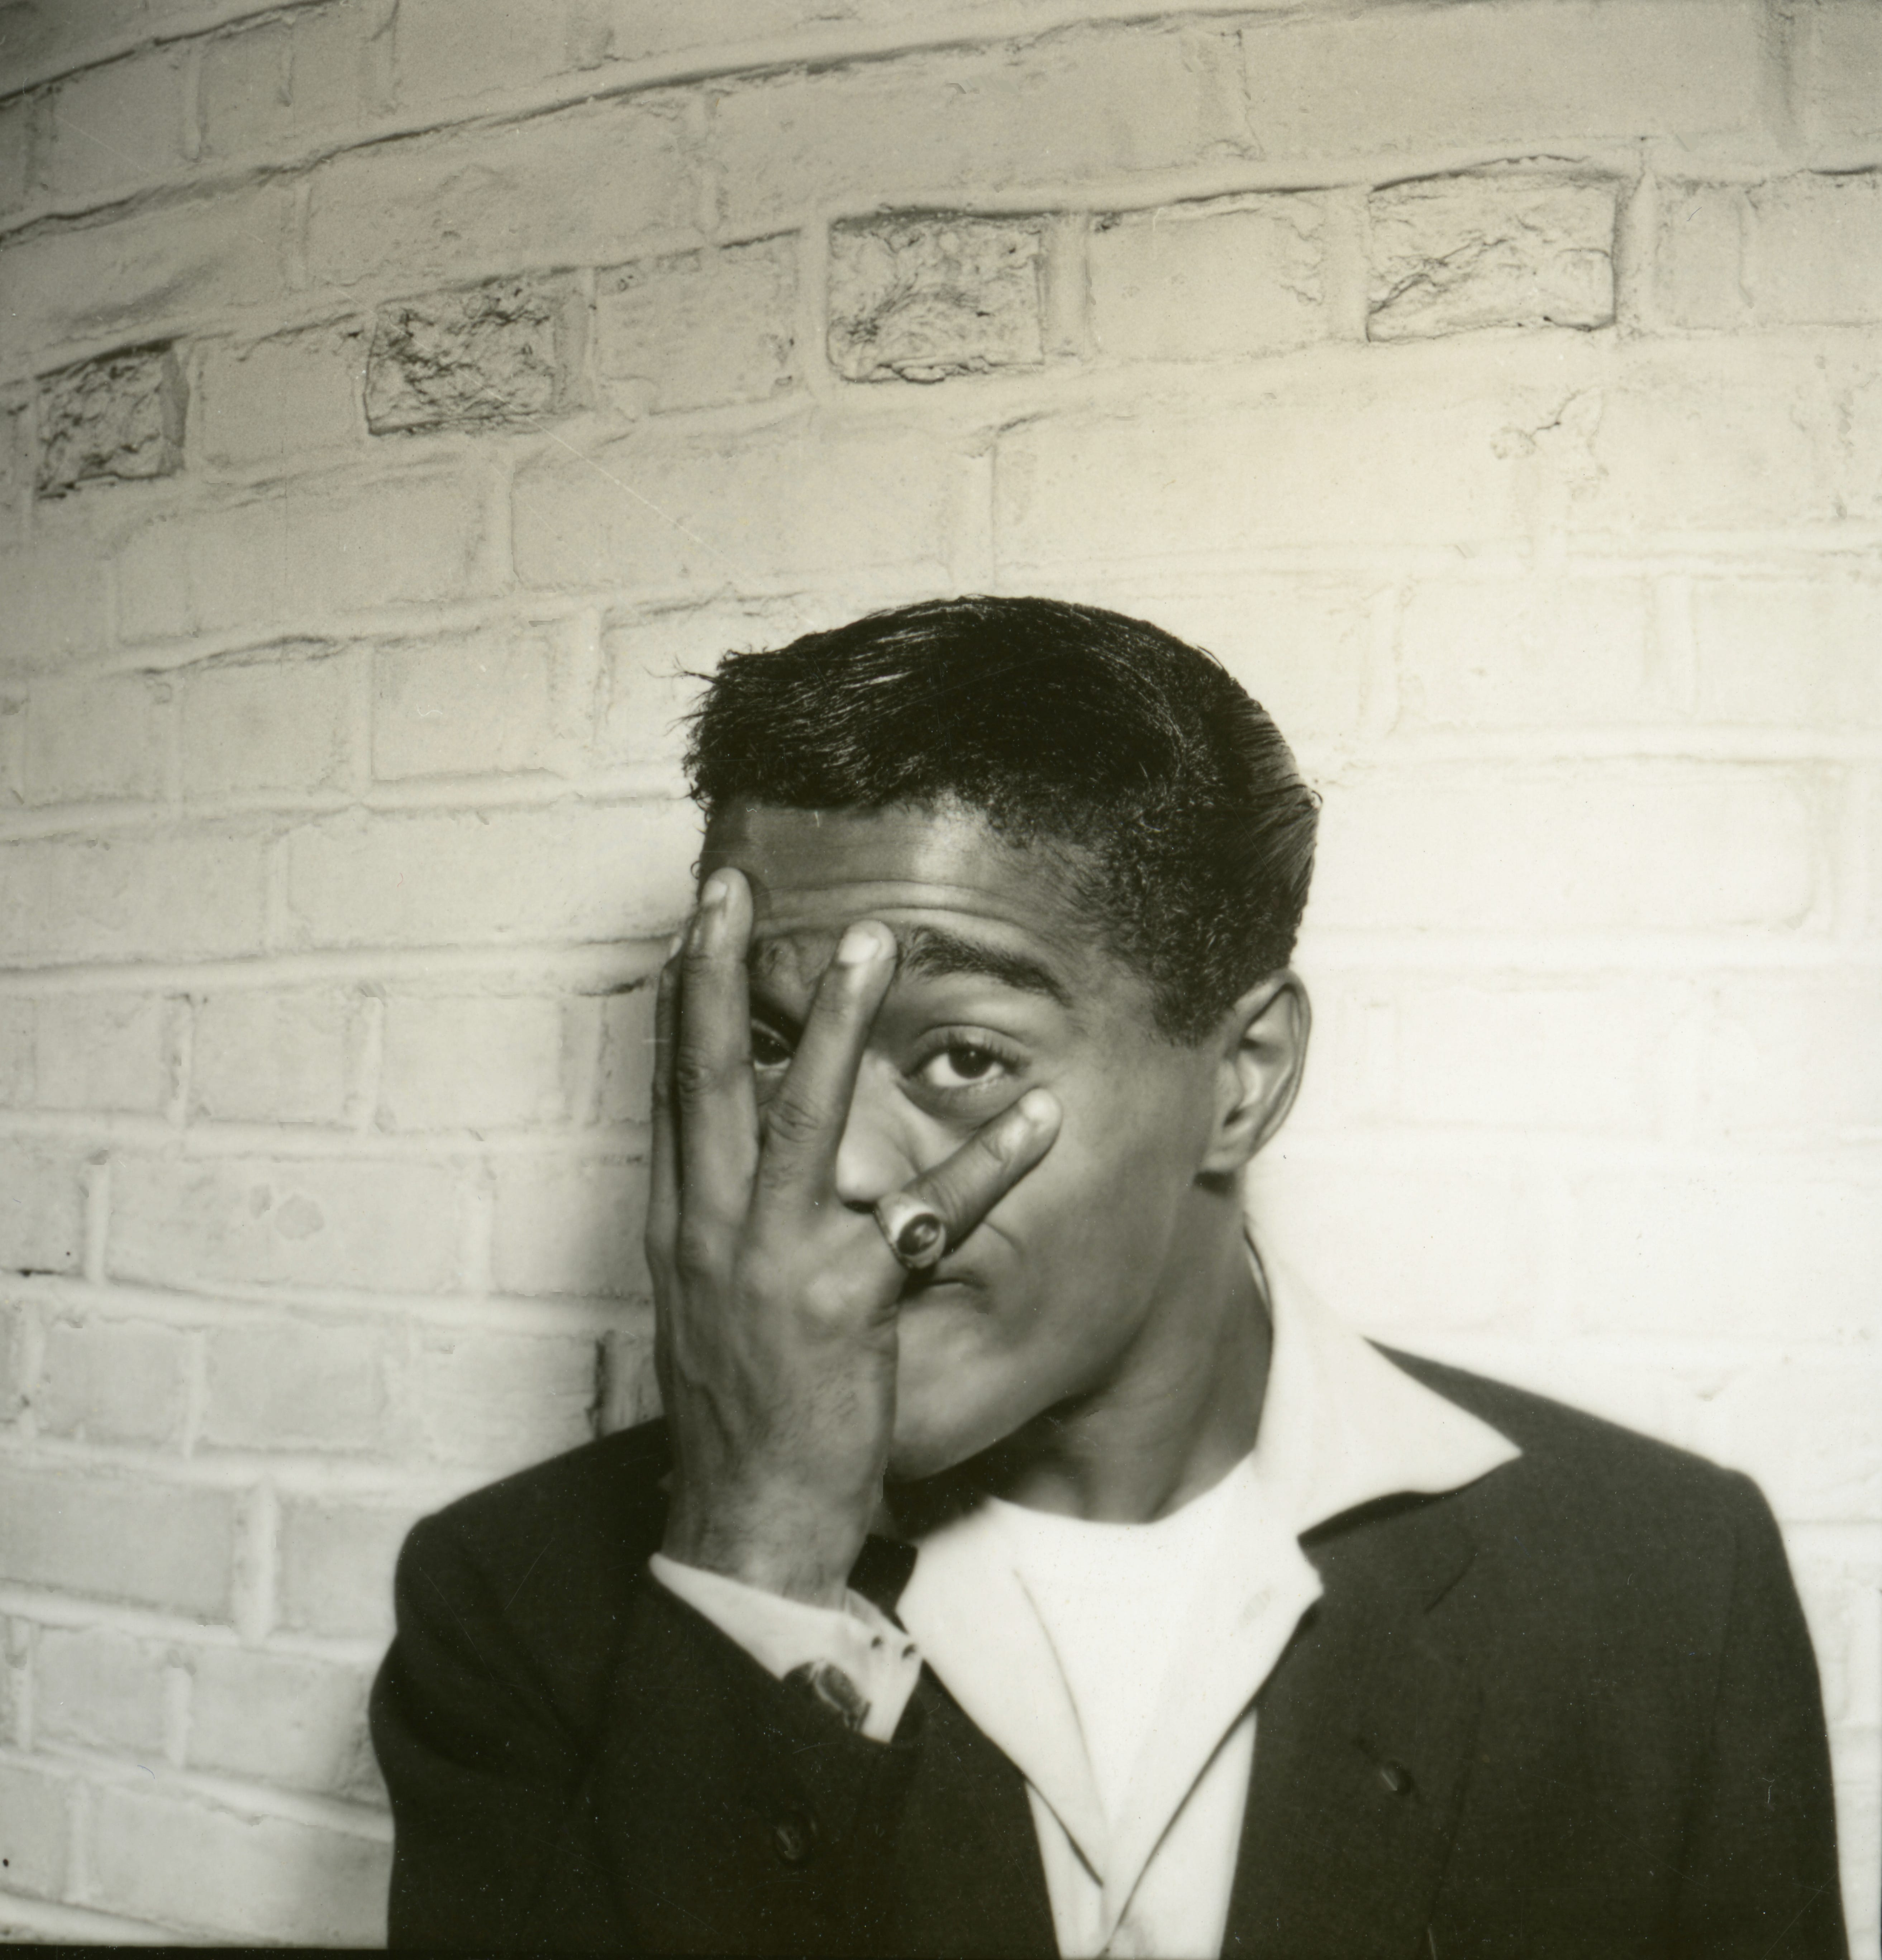 """One of show business' true legends is the focus of the new documentary """"Sammy Davis Jr.: I've Gotta Be Me,"""" one of eight feature films part of the Black Lens program at the 2018 Milwaukee Film Festival."""